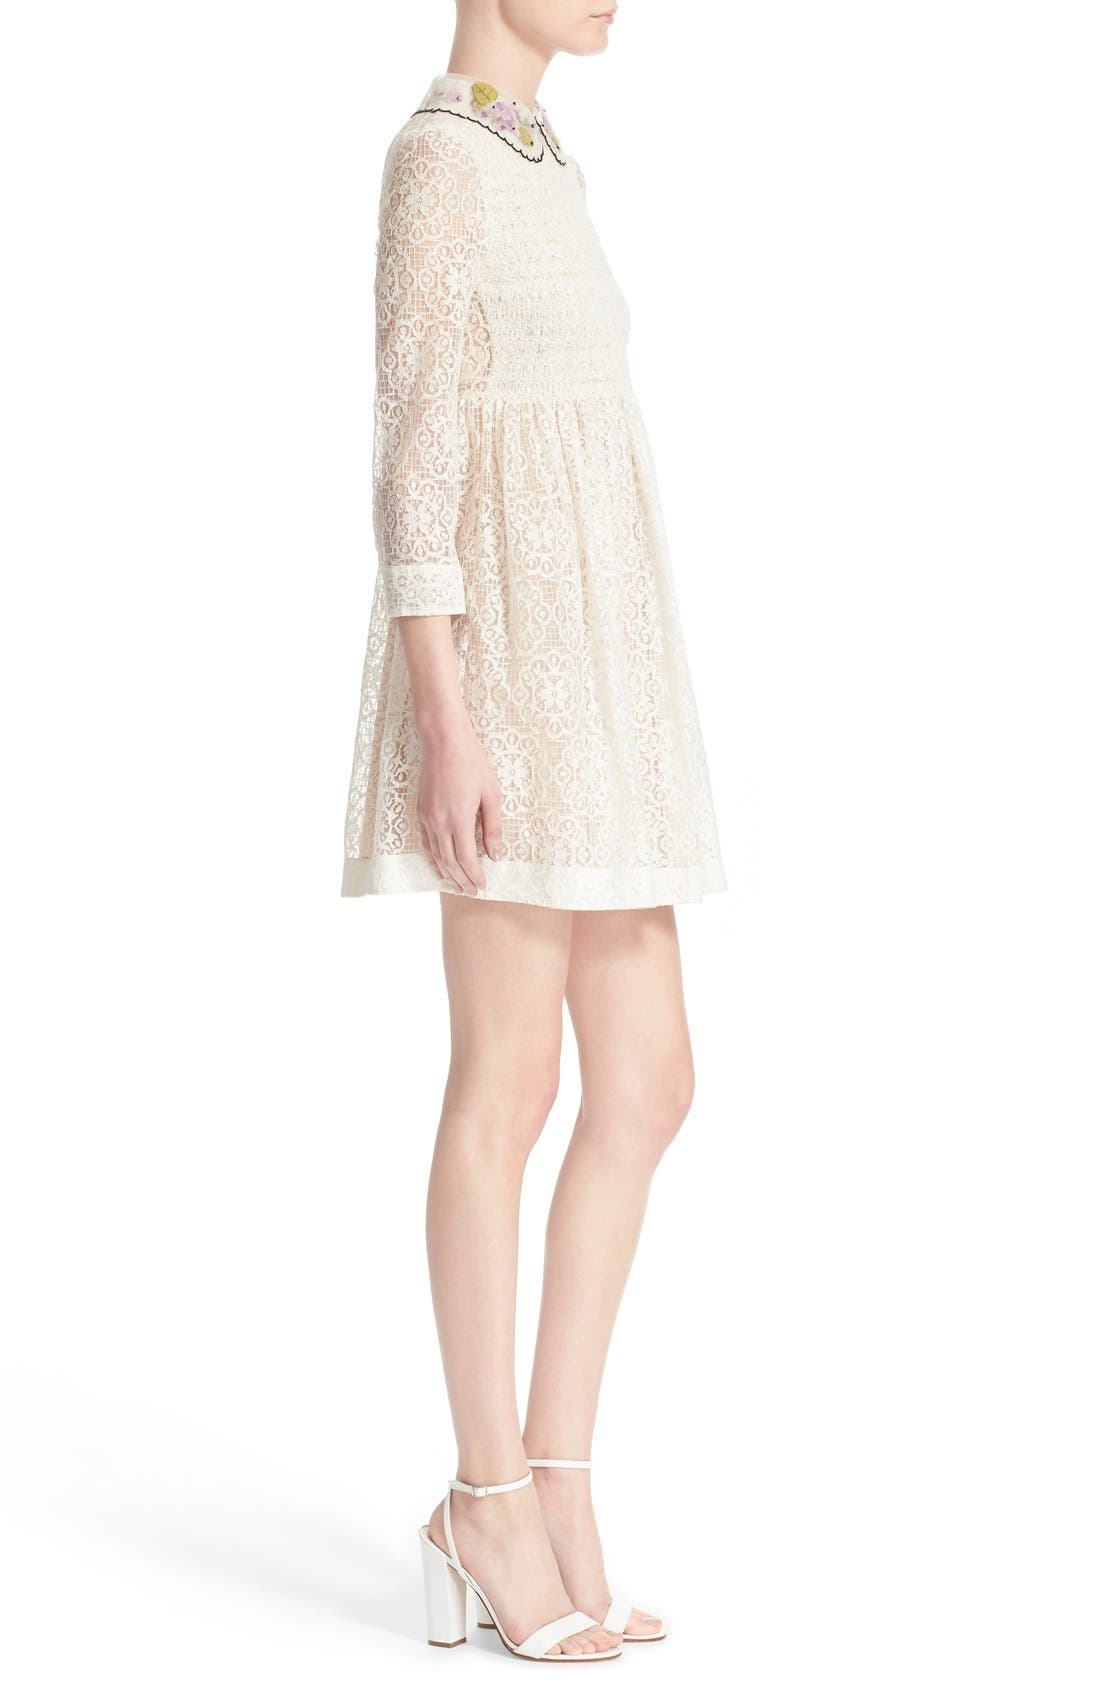 RED VALENTINO,                             Smocked Bodice Lace Dress,                             Alternate thumbnail 5, color,                             900